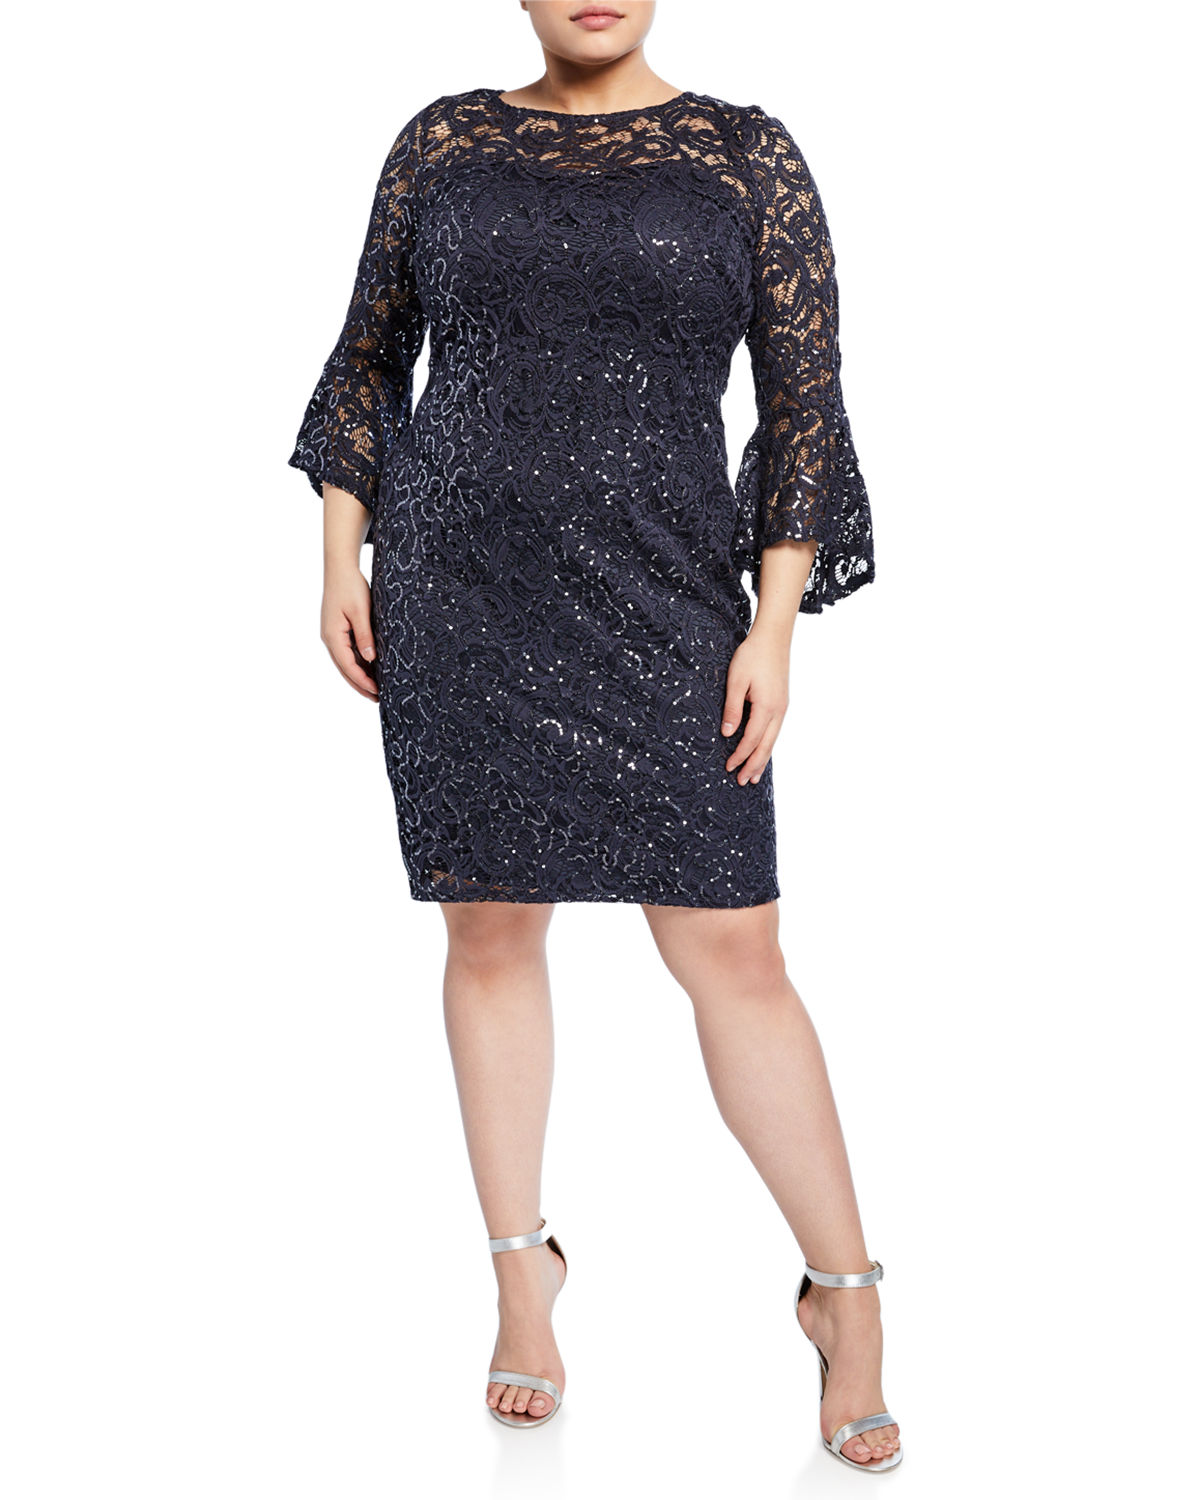 Plus Size Sequin Lace Bell Sleeve Short Dress in Gray